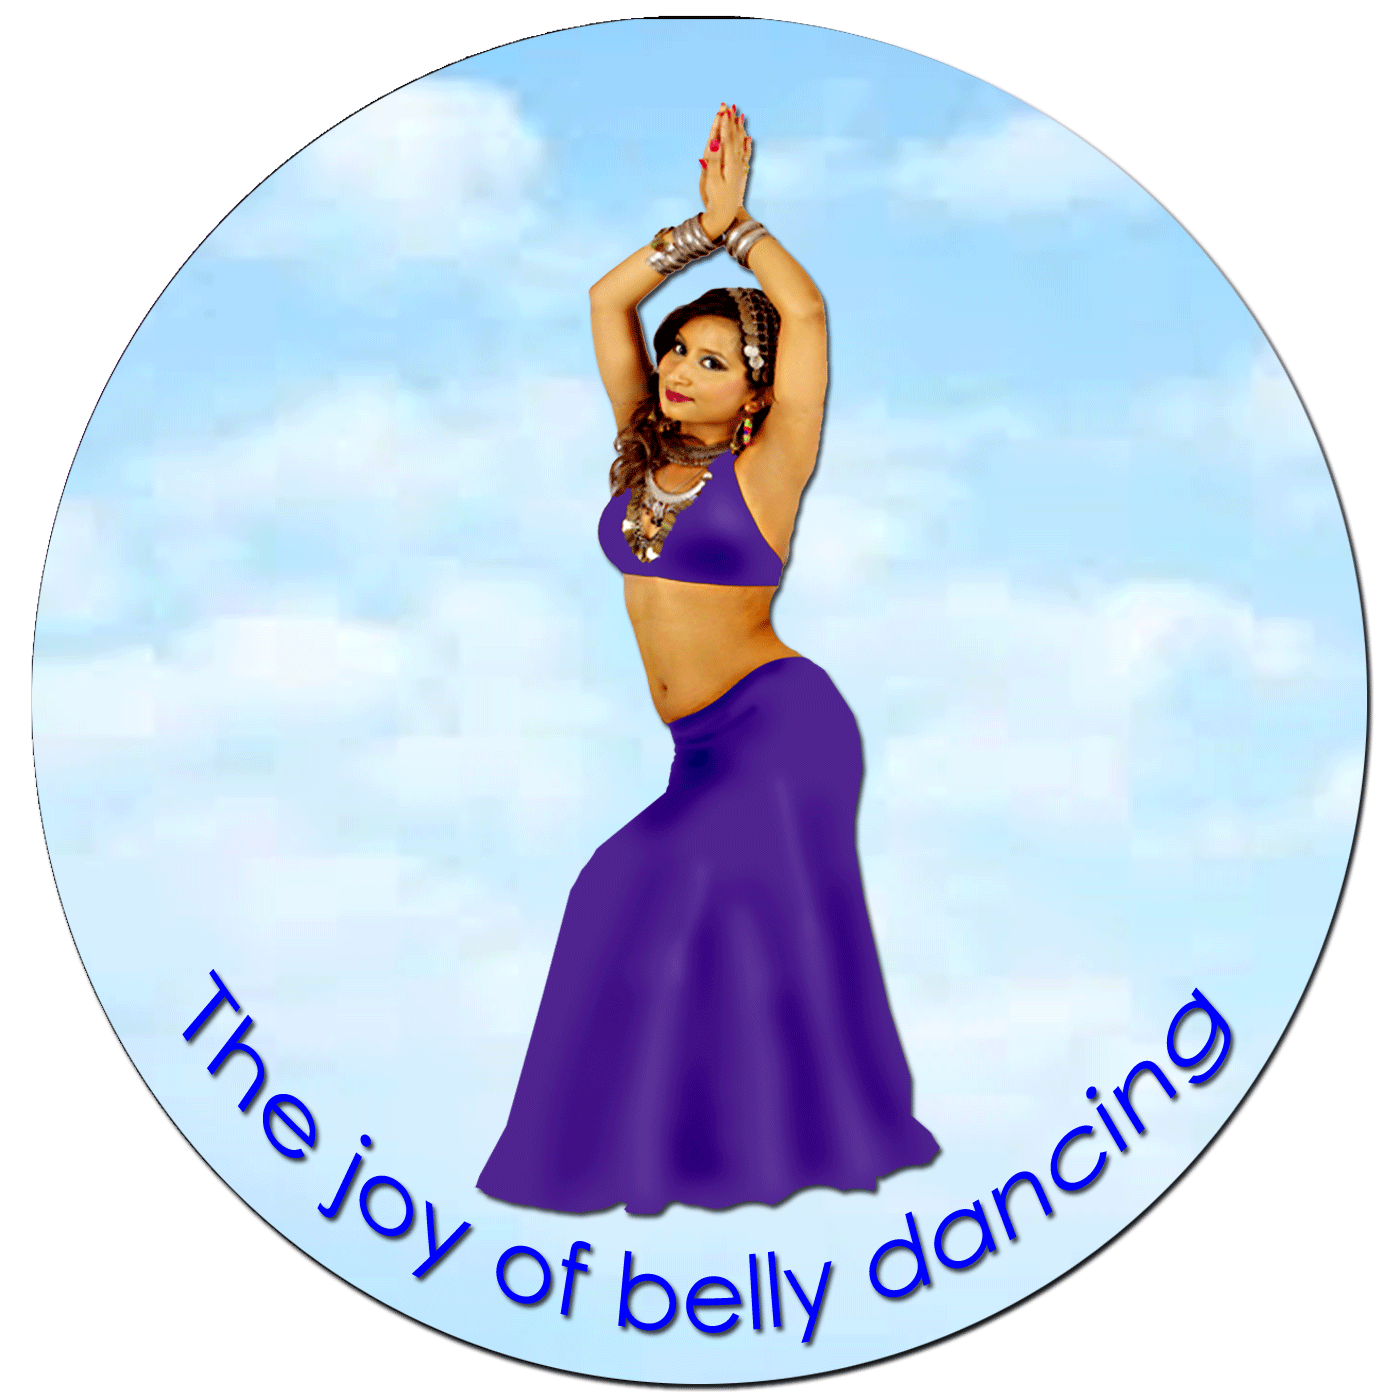 Click here for more details on, 3-video Belly dancing video course